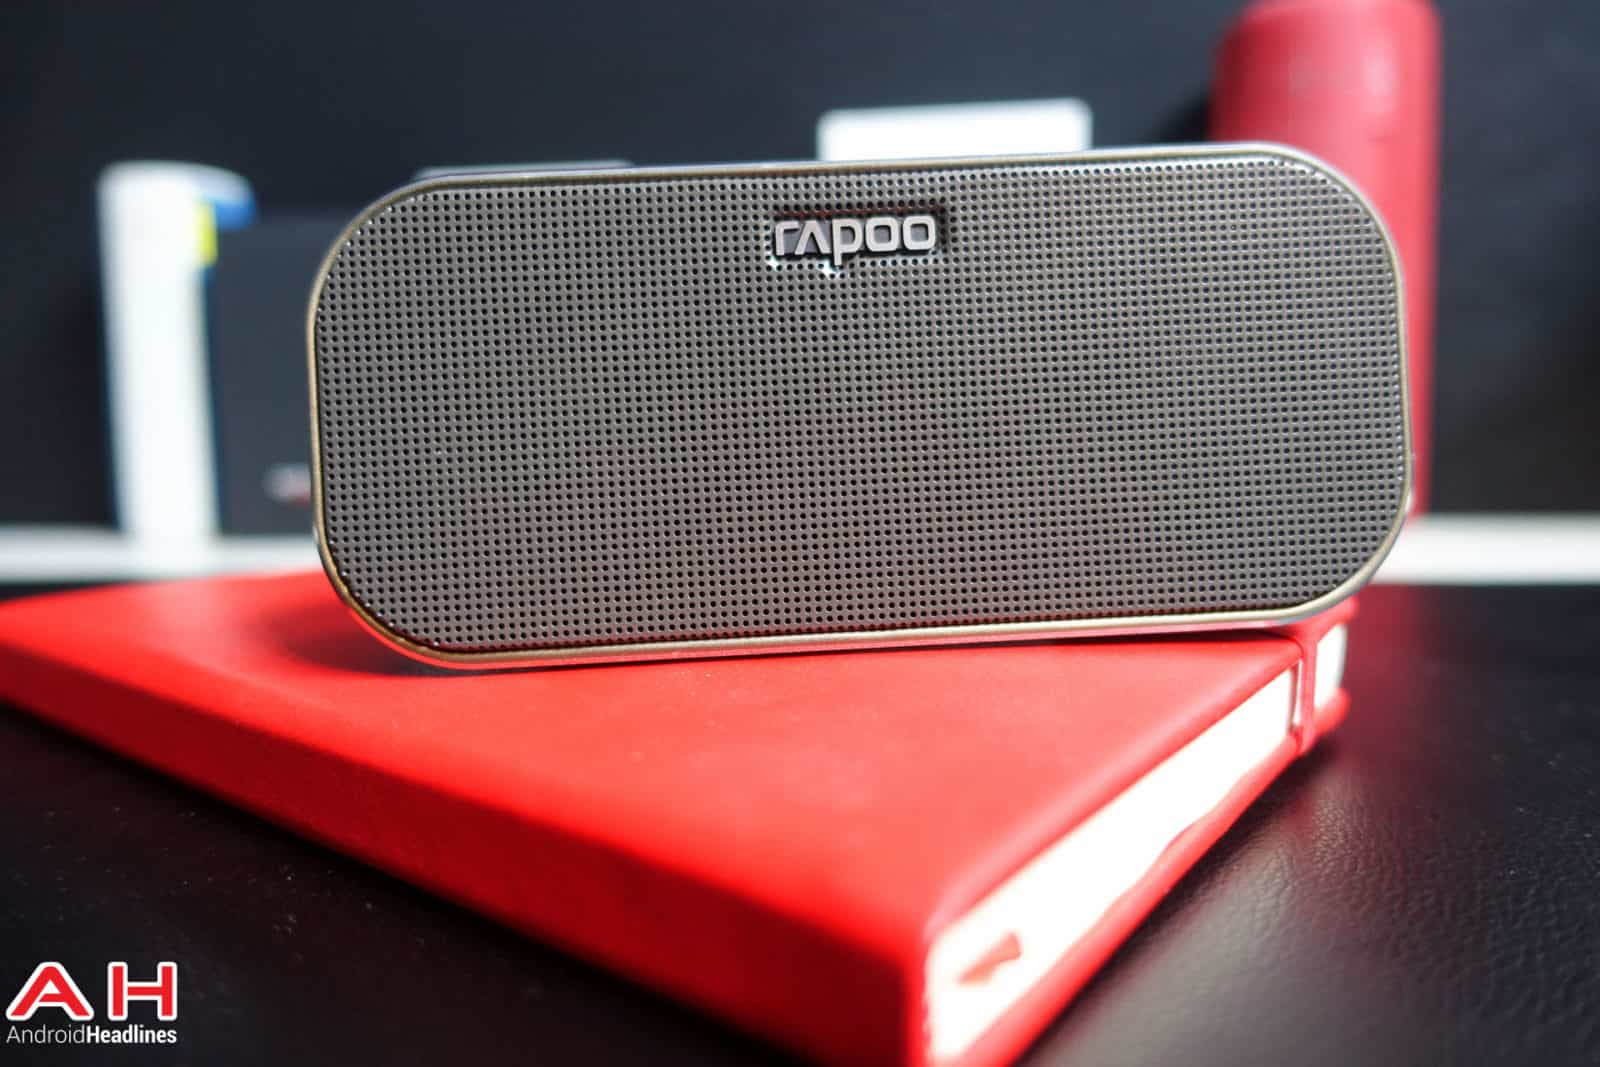 Rapoo-A500-Bluetooth-Speaker-Review-AH-03386